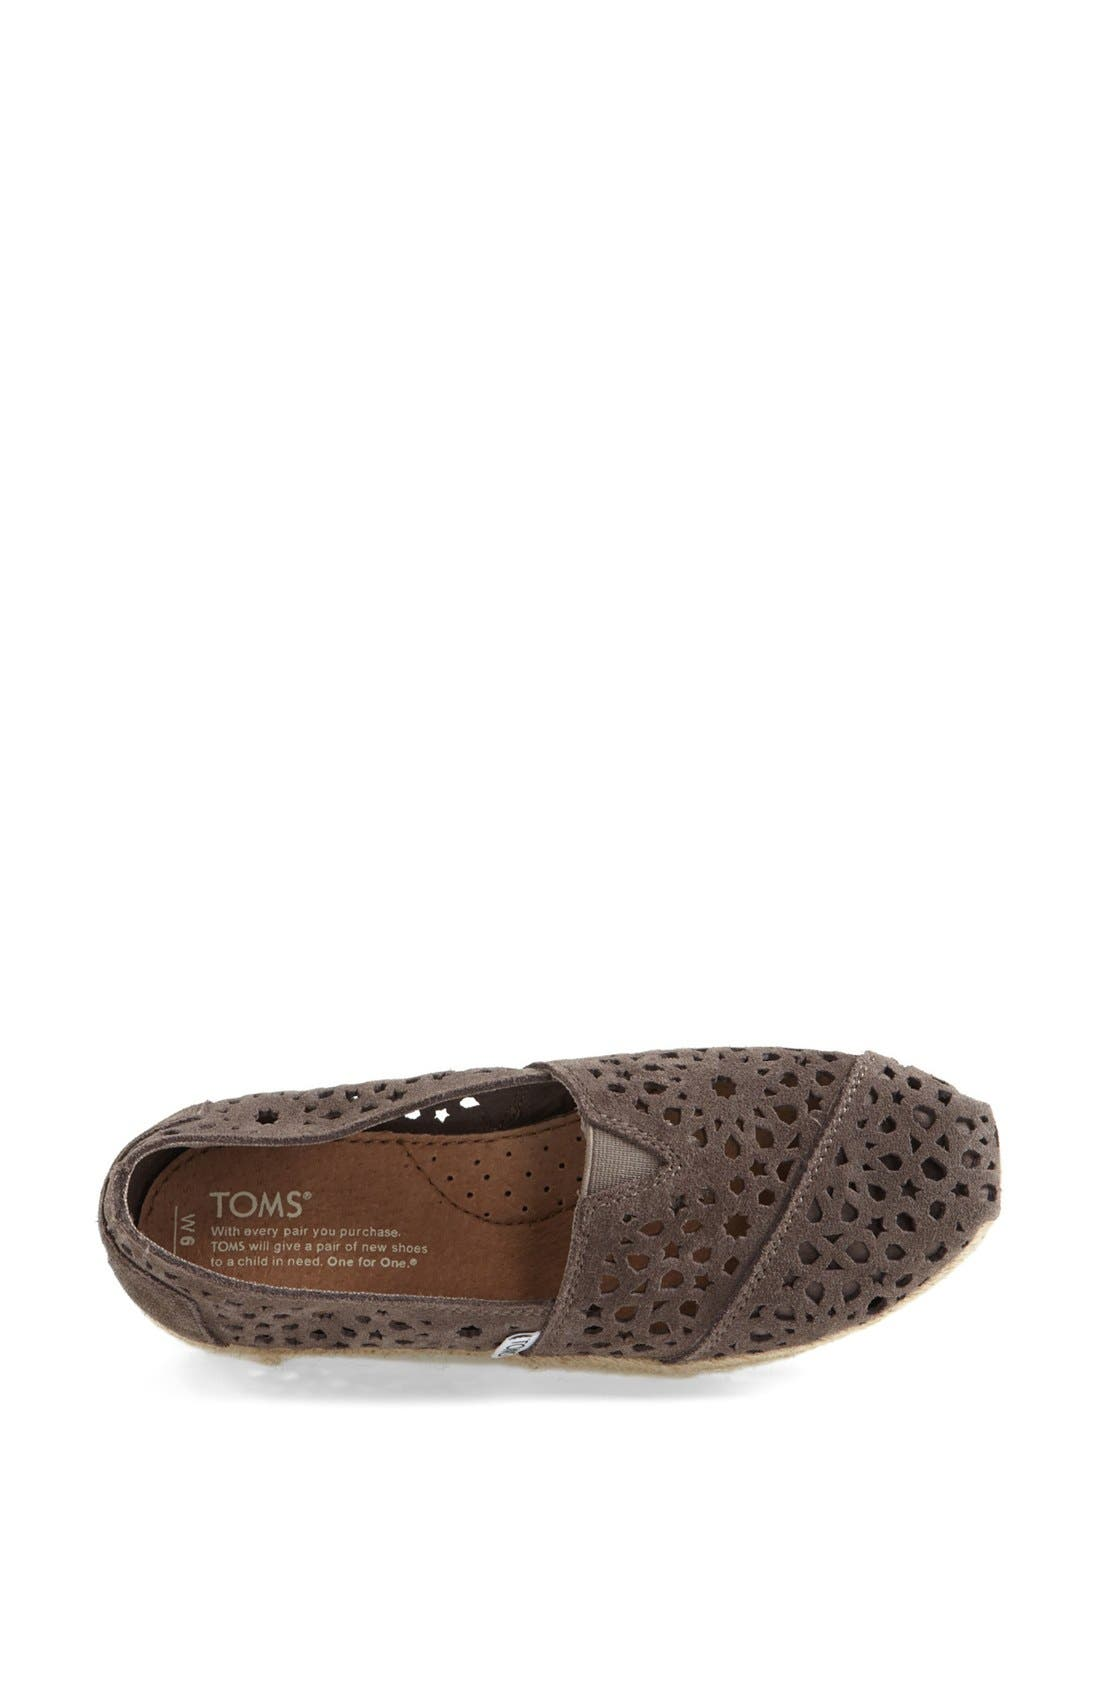 Alternate Image 3  - TOMS 'Classic - Moroccan Cutout' Slip-On (Women)